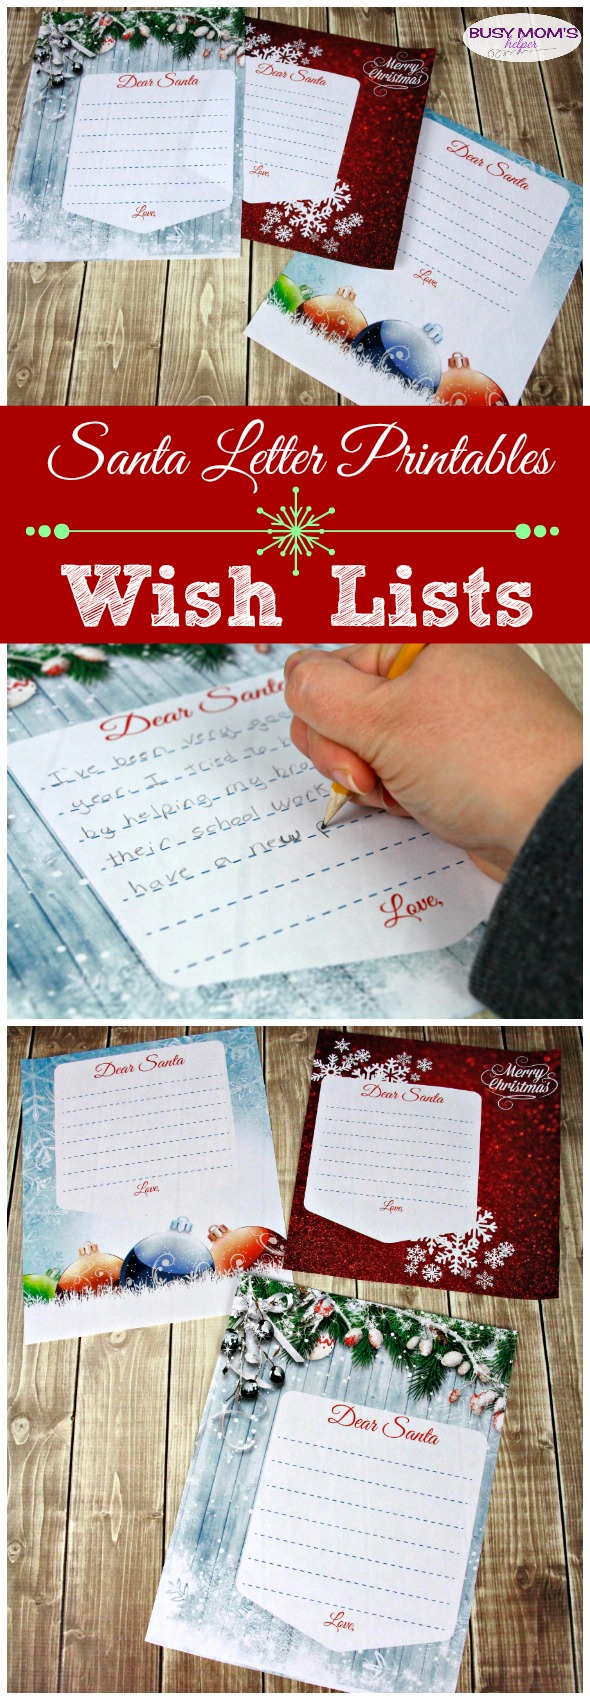 Santa Letter Printable Wish List / great free printable wish lists for the holidays! Three cute holiday designs for a letter to Santa #christmas #holidays #santa #wishlist #christmaslist #freeprintable #christmasprintable #santaletter #printablewishlist